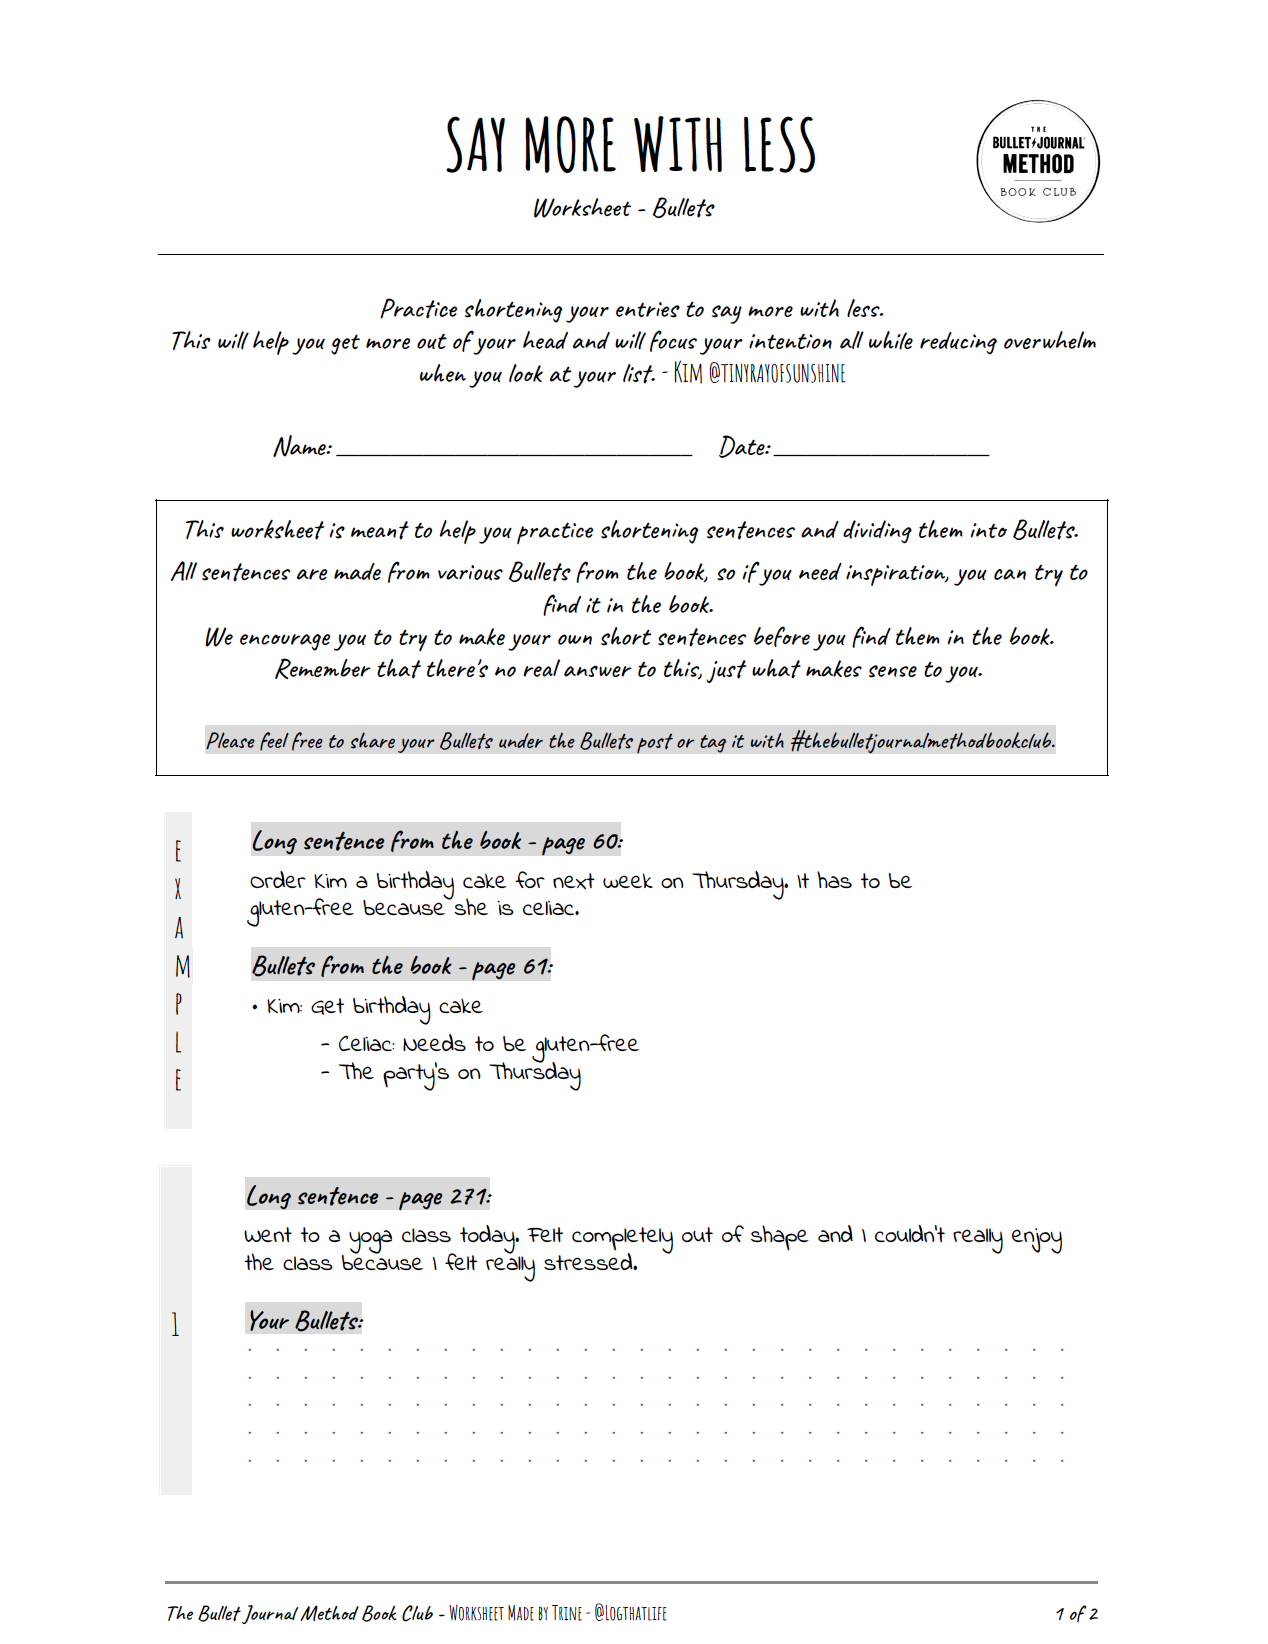 Say More With Less Worksheet - Designed to help you practice shortening your sentences, the Rapid Log way. Created by Trine.Download:- Letter size- A4 size